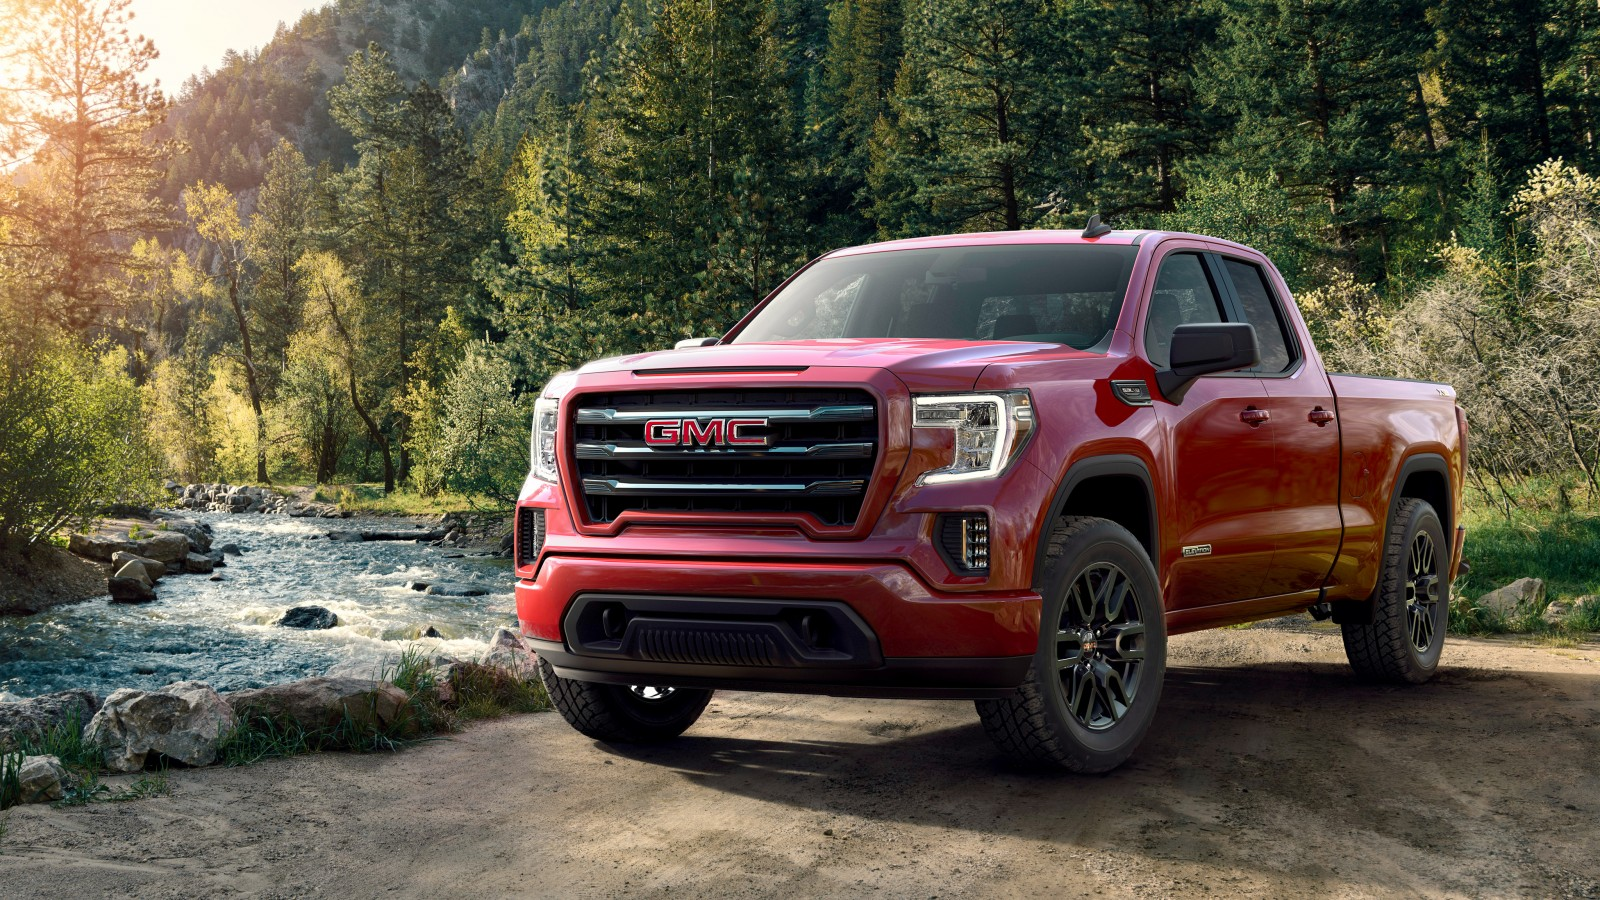 2019 GMC Sierra Elevation Doule Cab 4K Wallpaper | HD Car ...